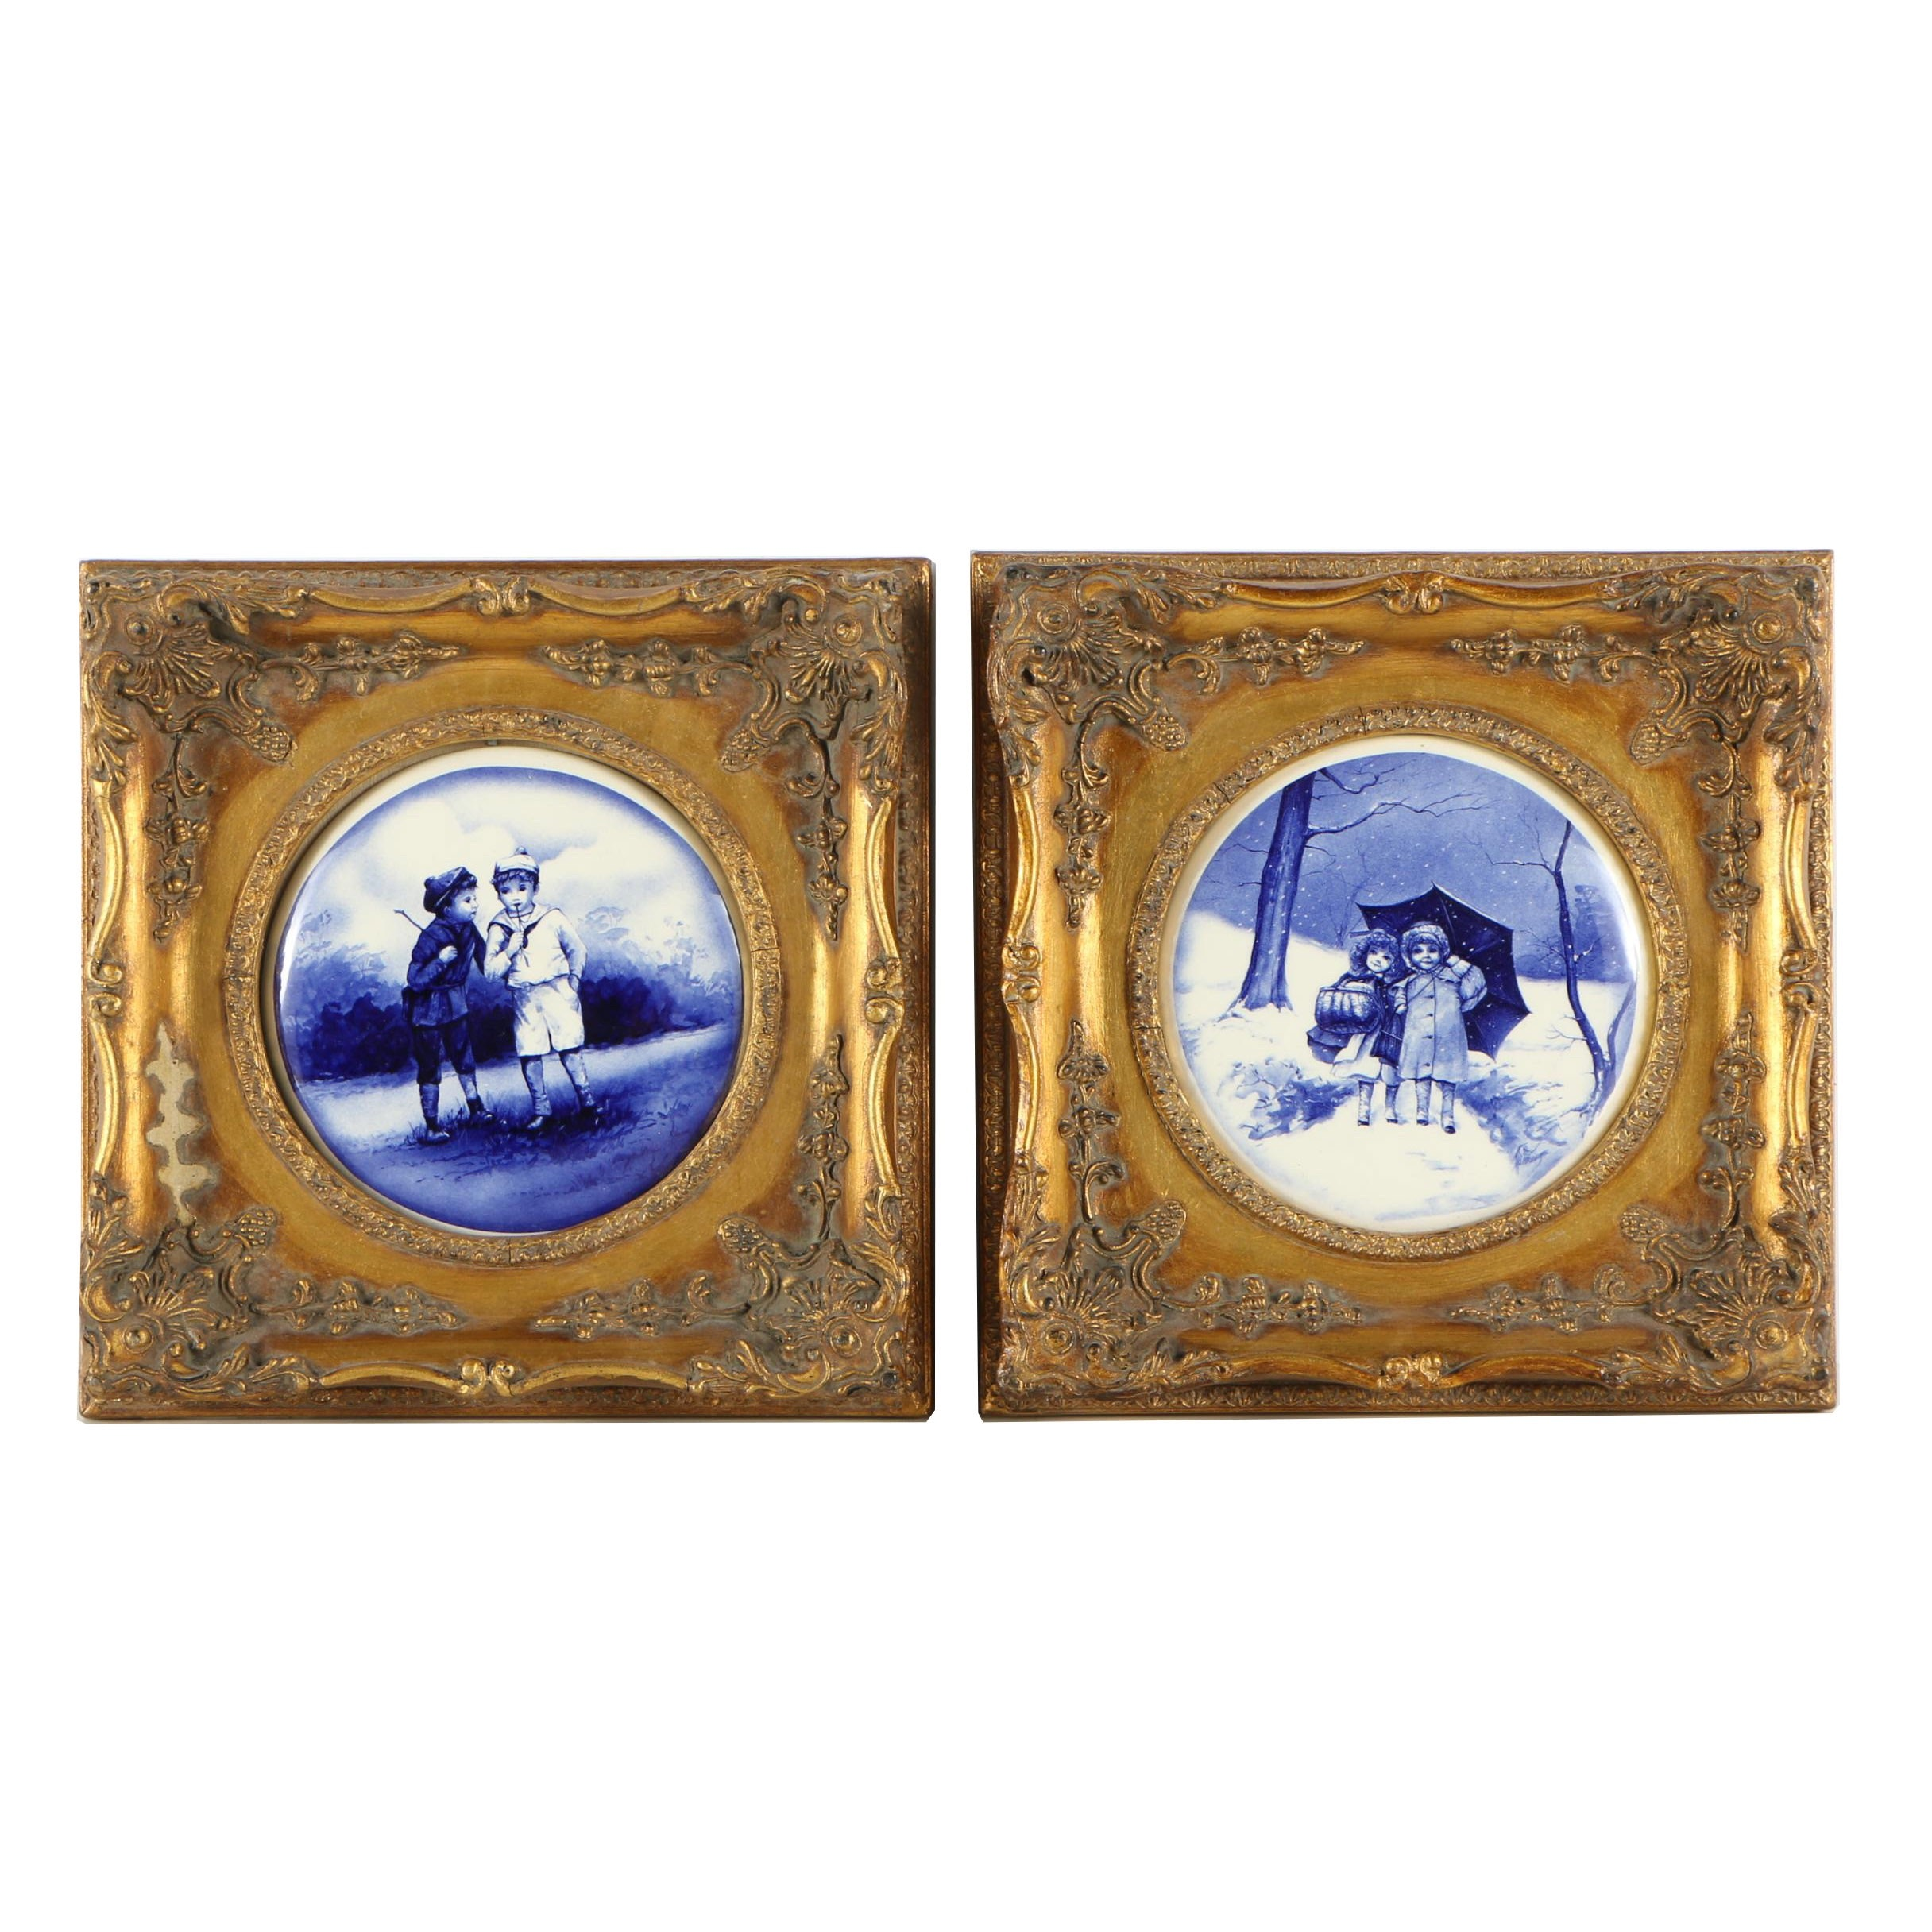 Printed Porcelain Medallions in Rococo Style Frames